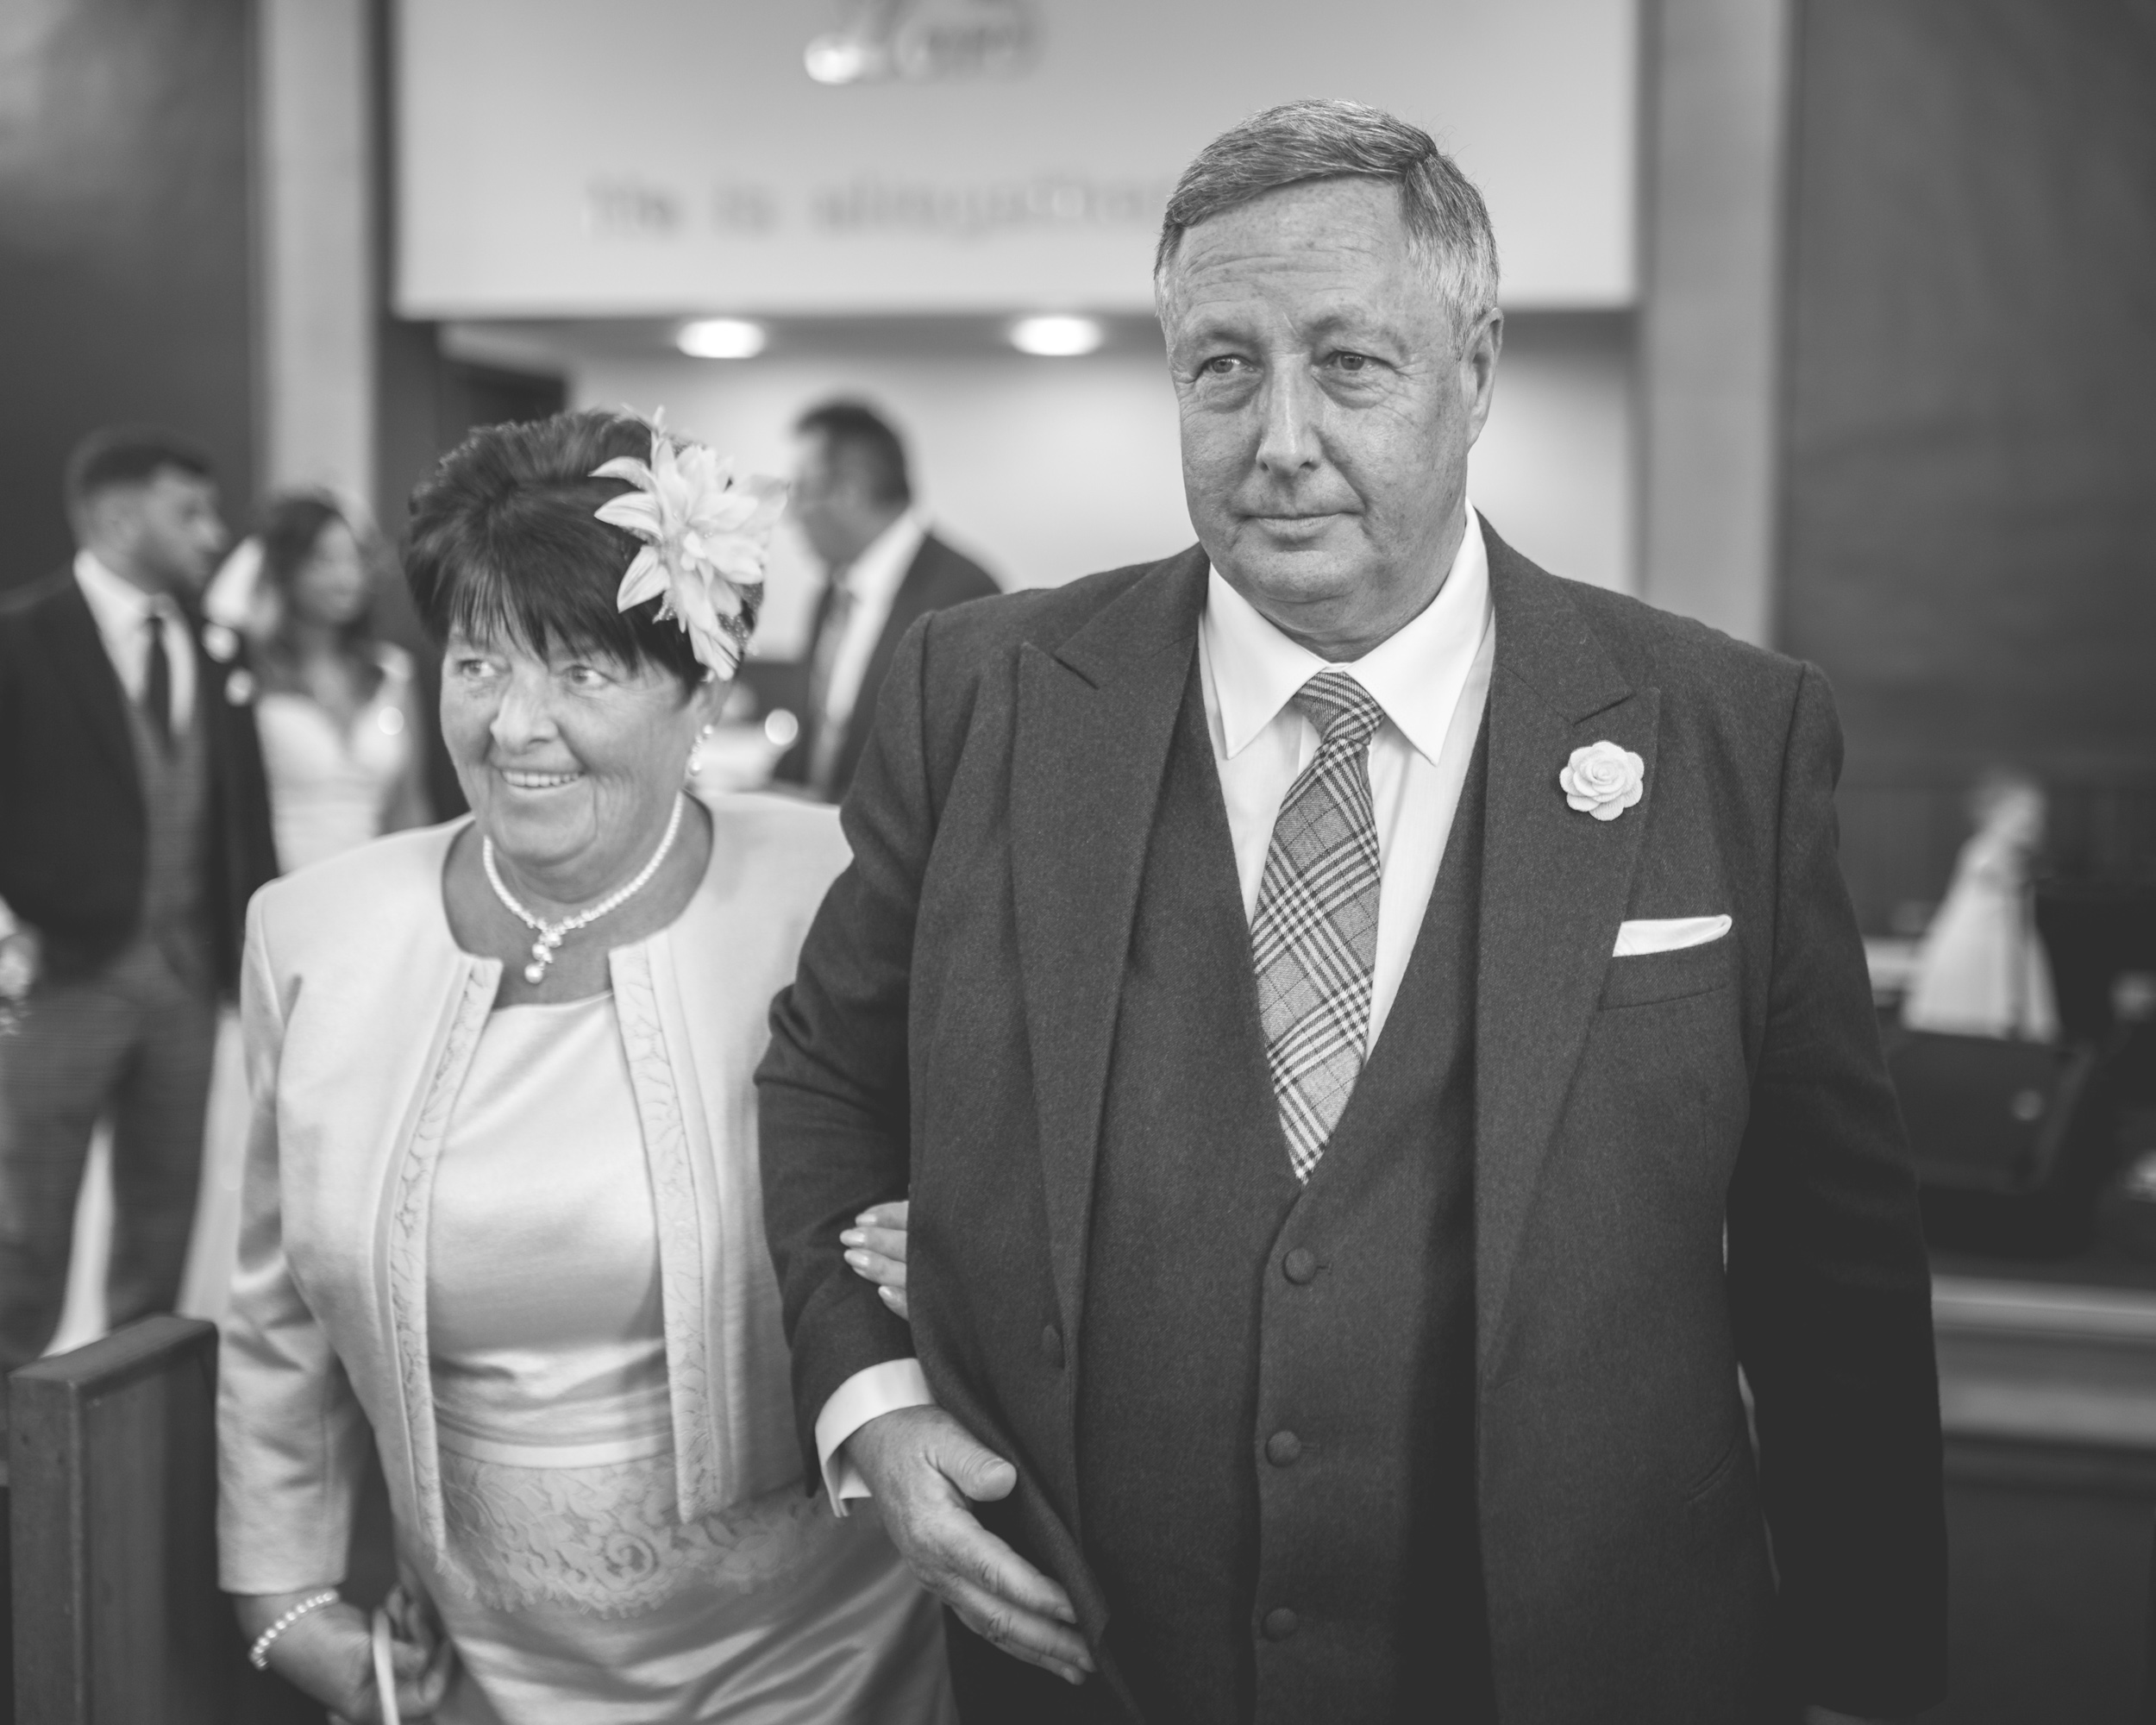 Brian McEwan | Northern Ireland Wedding Photographer | Rebecca & Michael | Ceremony-105.jpg